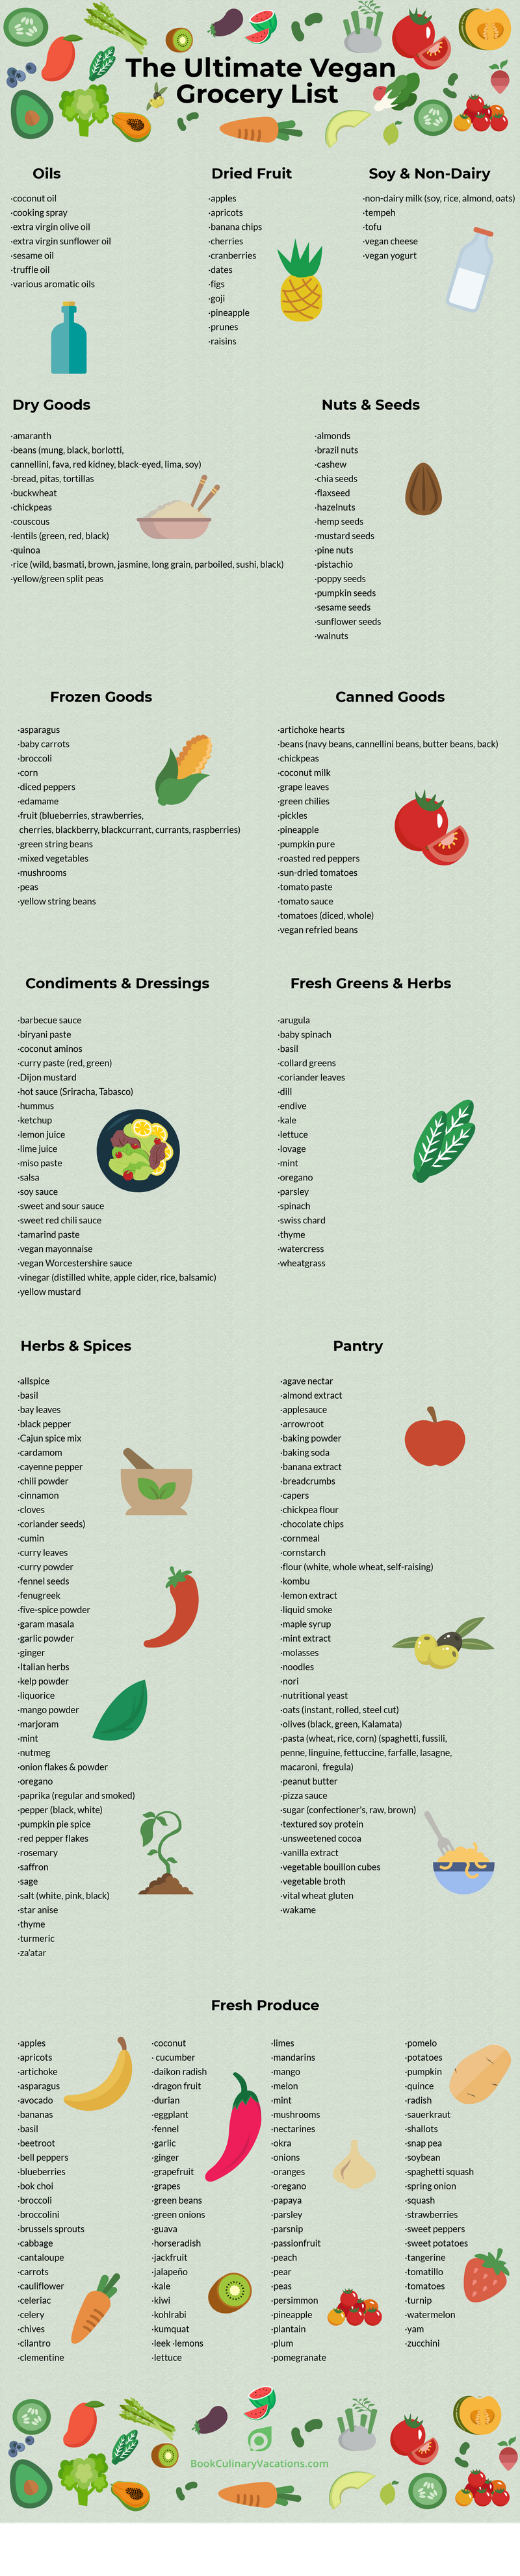 vegan-grocery-list